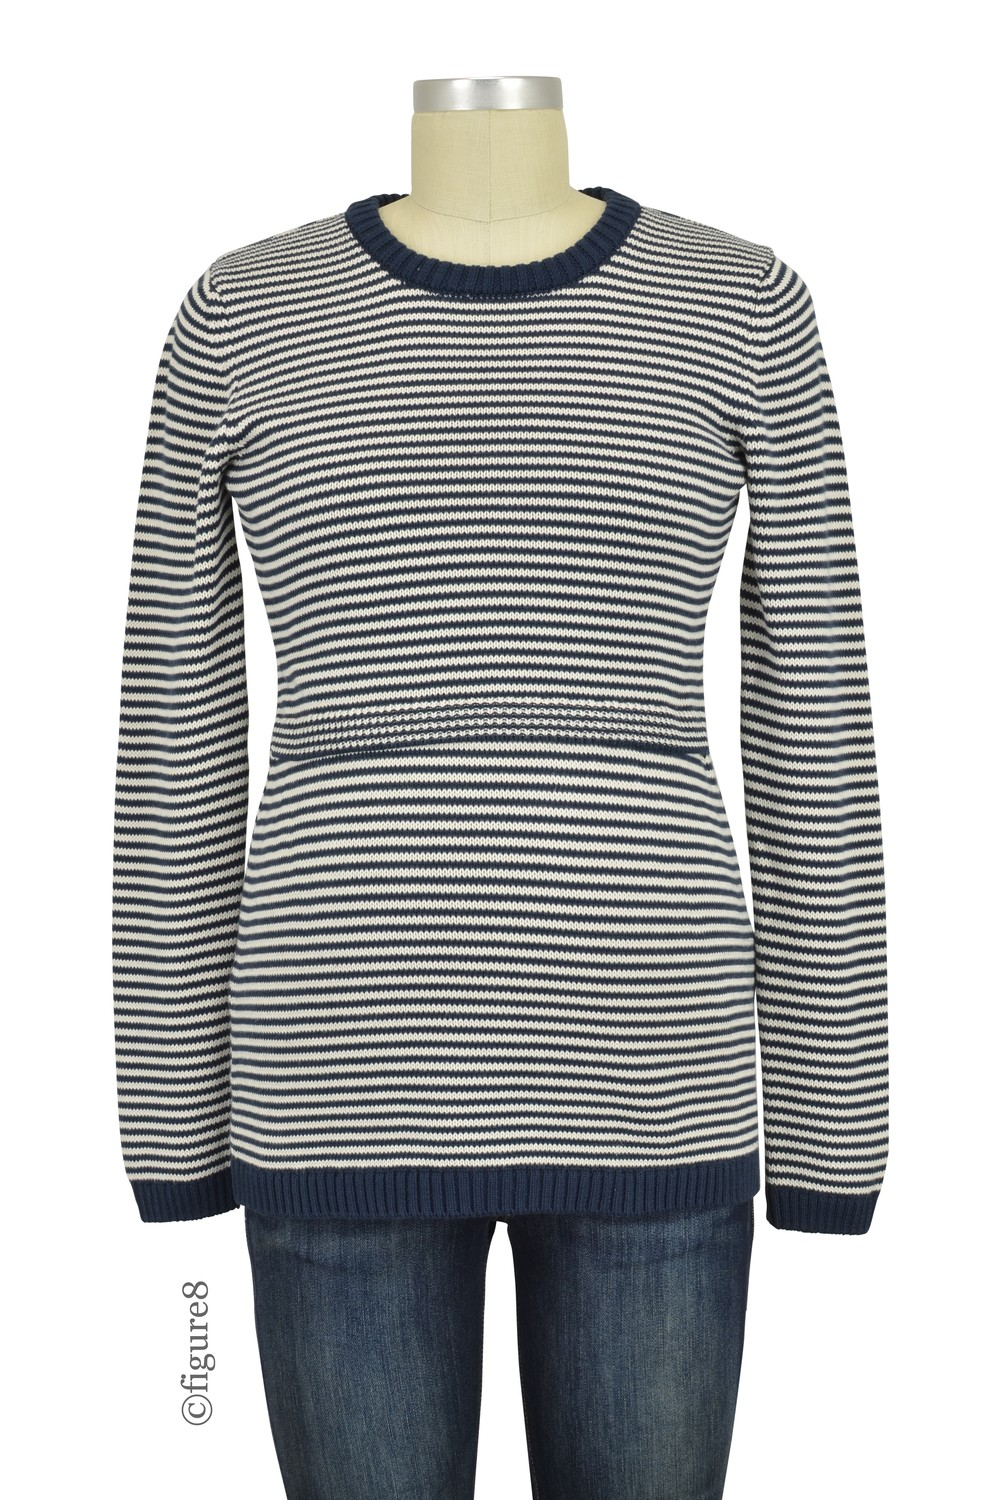 Boob Design Francis Organic Knitted Striped Maternity & Nursing Sweater (Midnight Blue/Off-White)